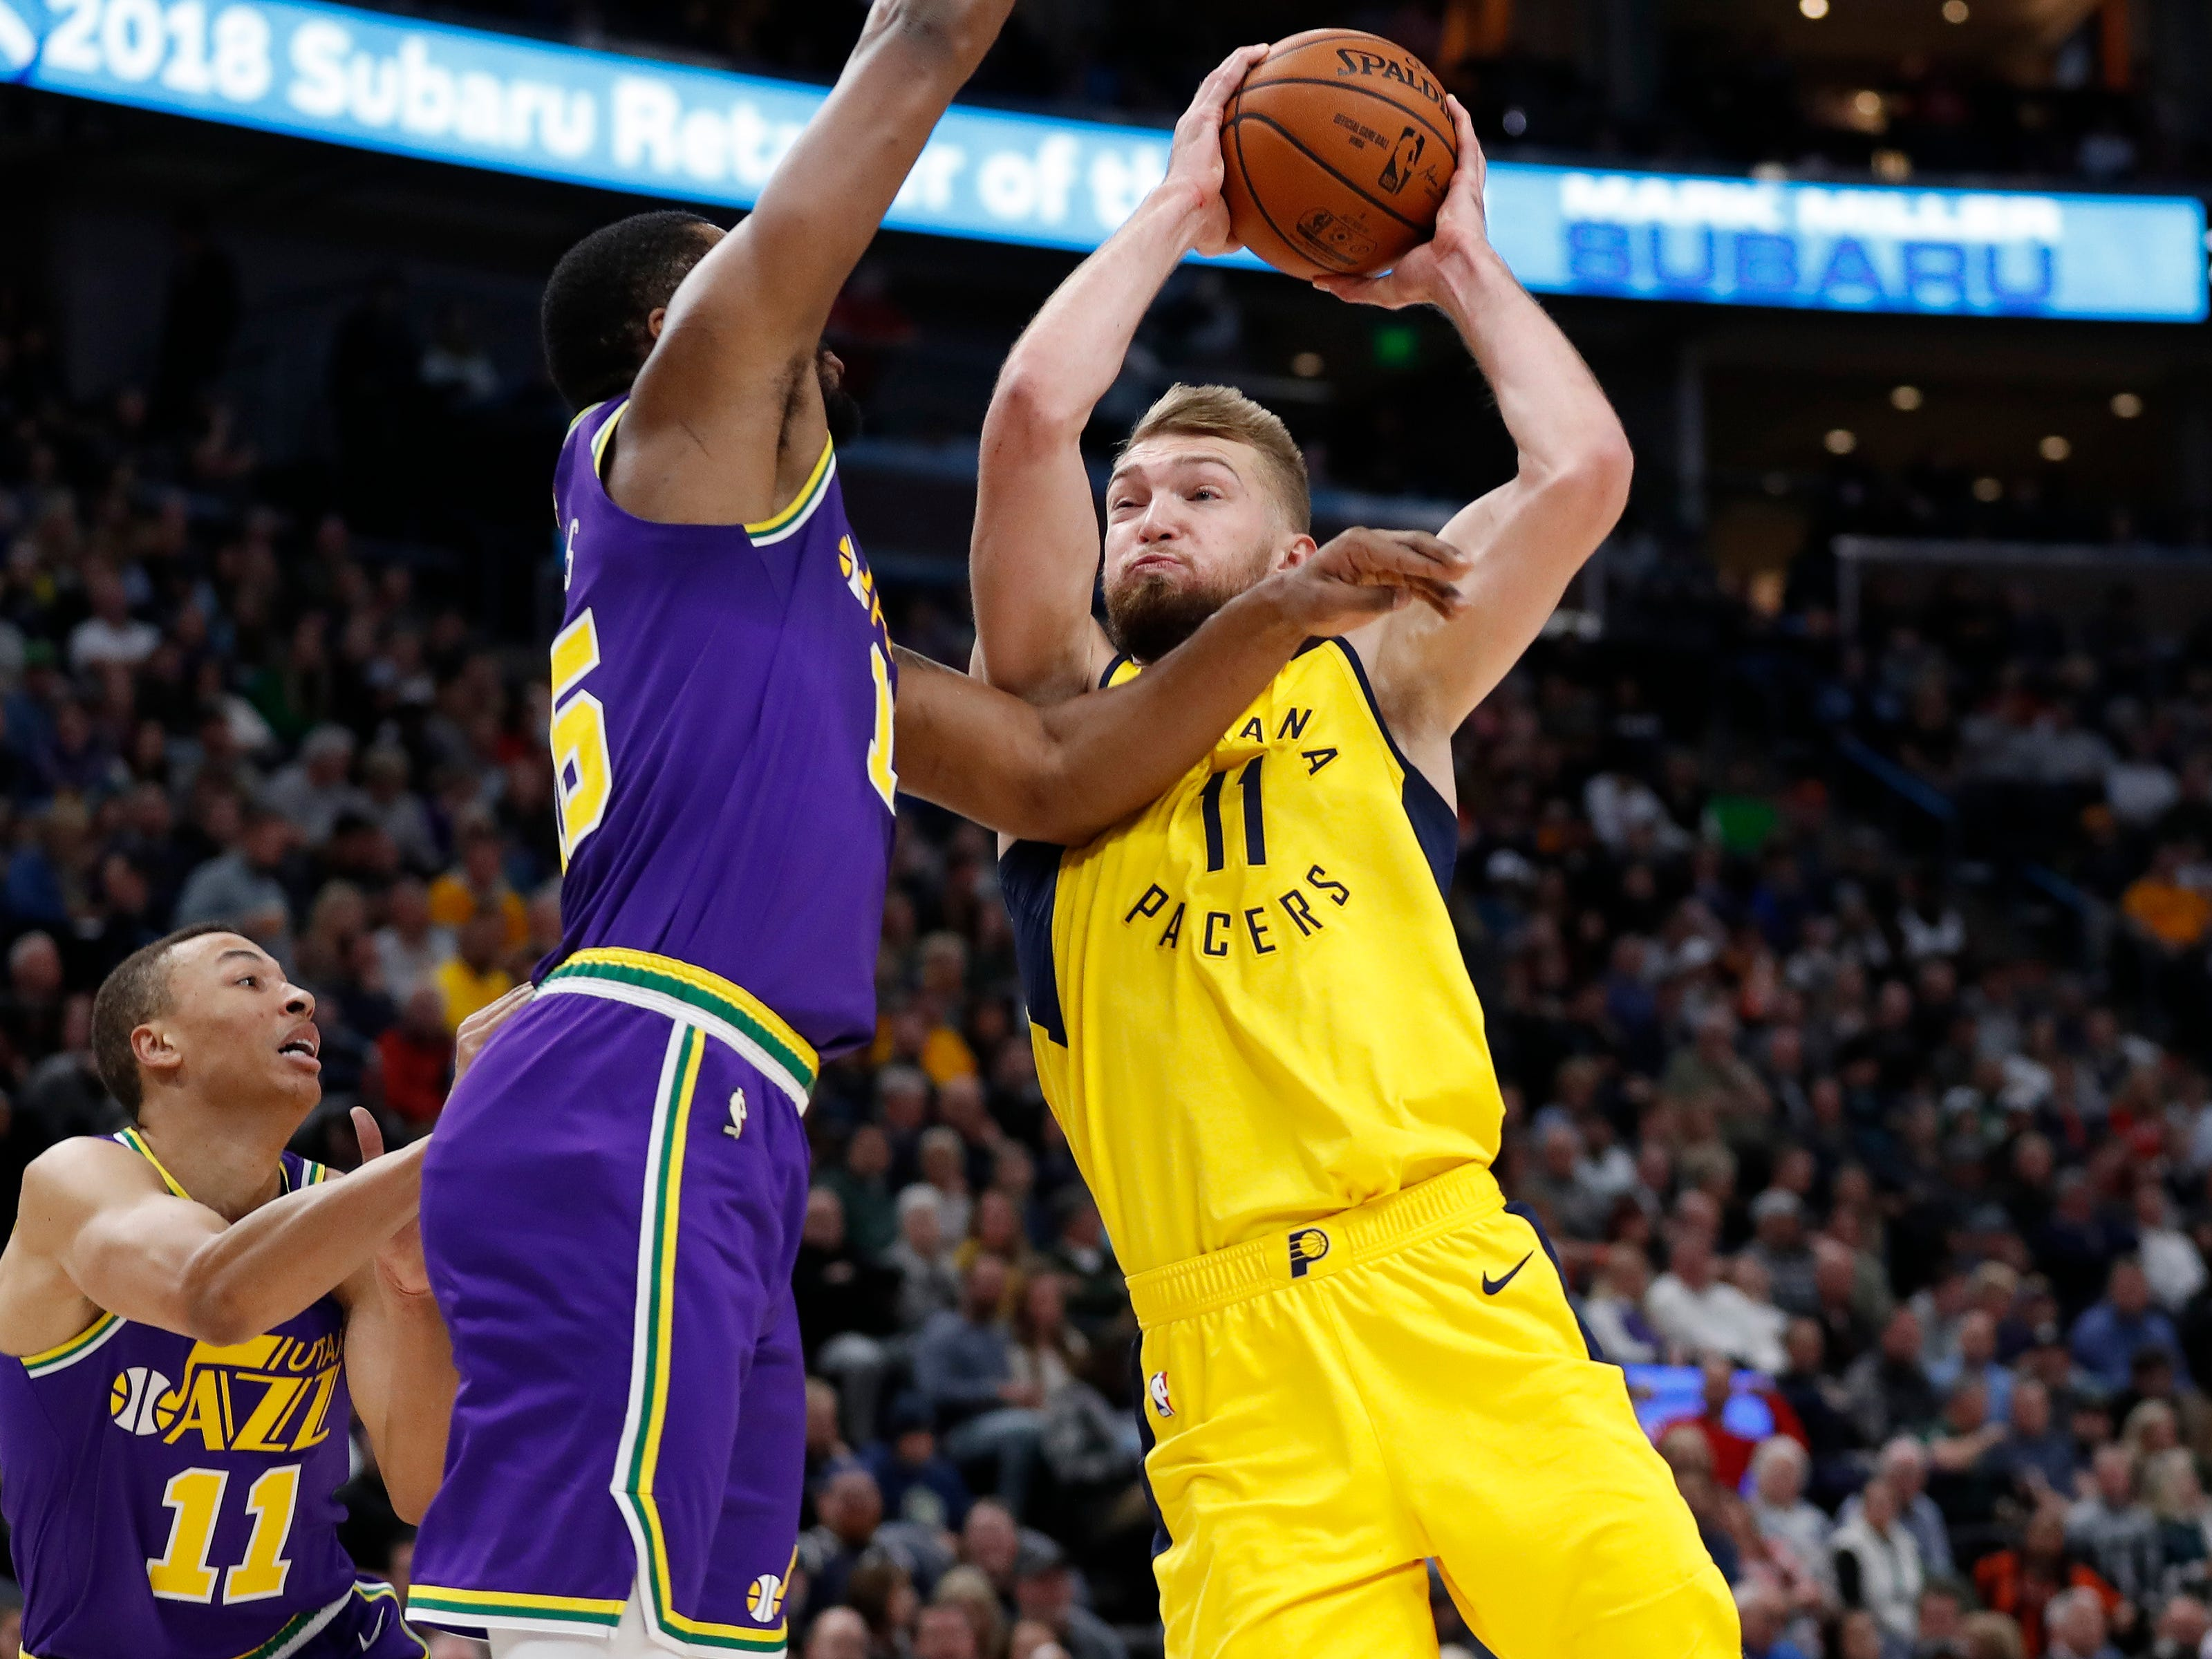 Indiana Pacers forward Domantas Sabonis (11) shoots against Utah Jazz forward Derrick Favors (15) in the second quarter at Vivint Smart Home Arena.